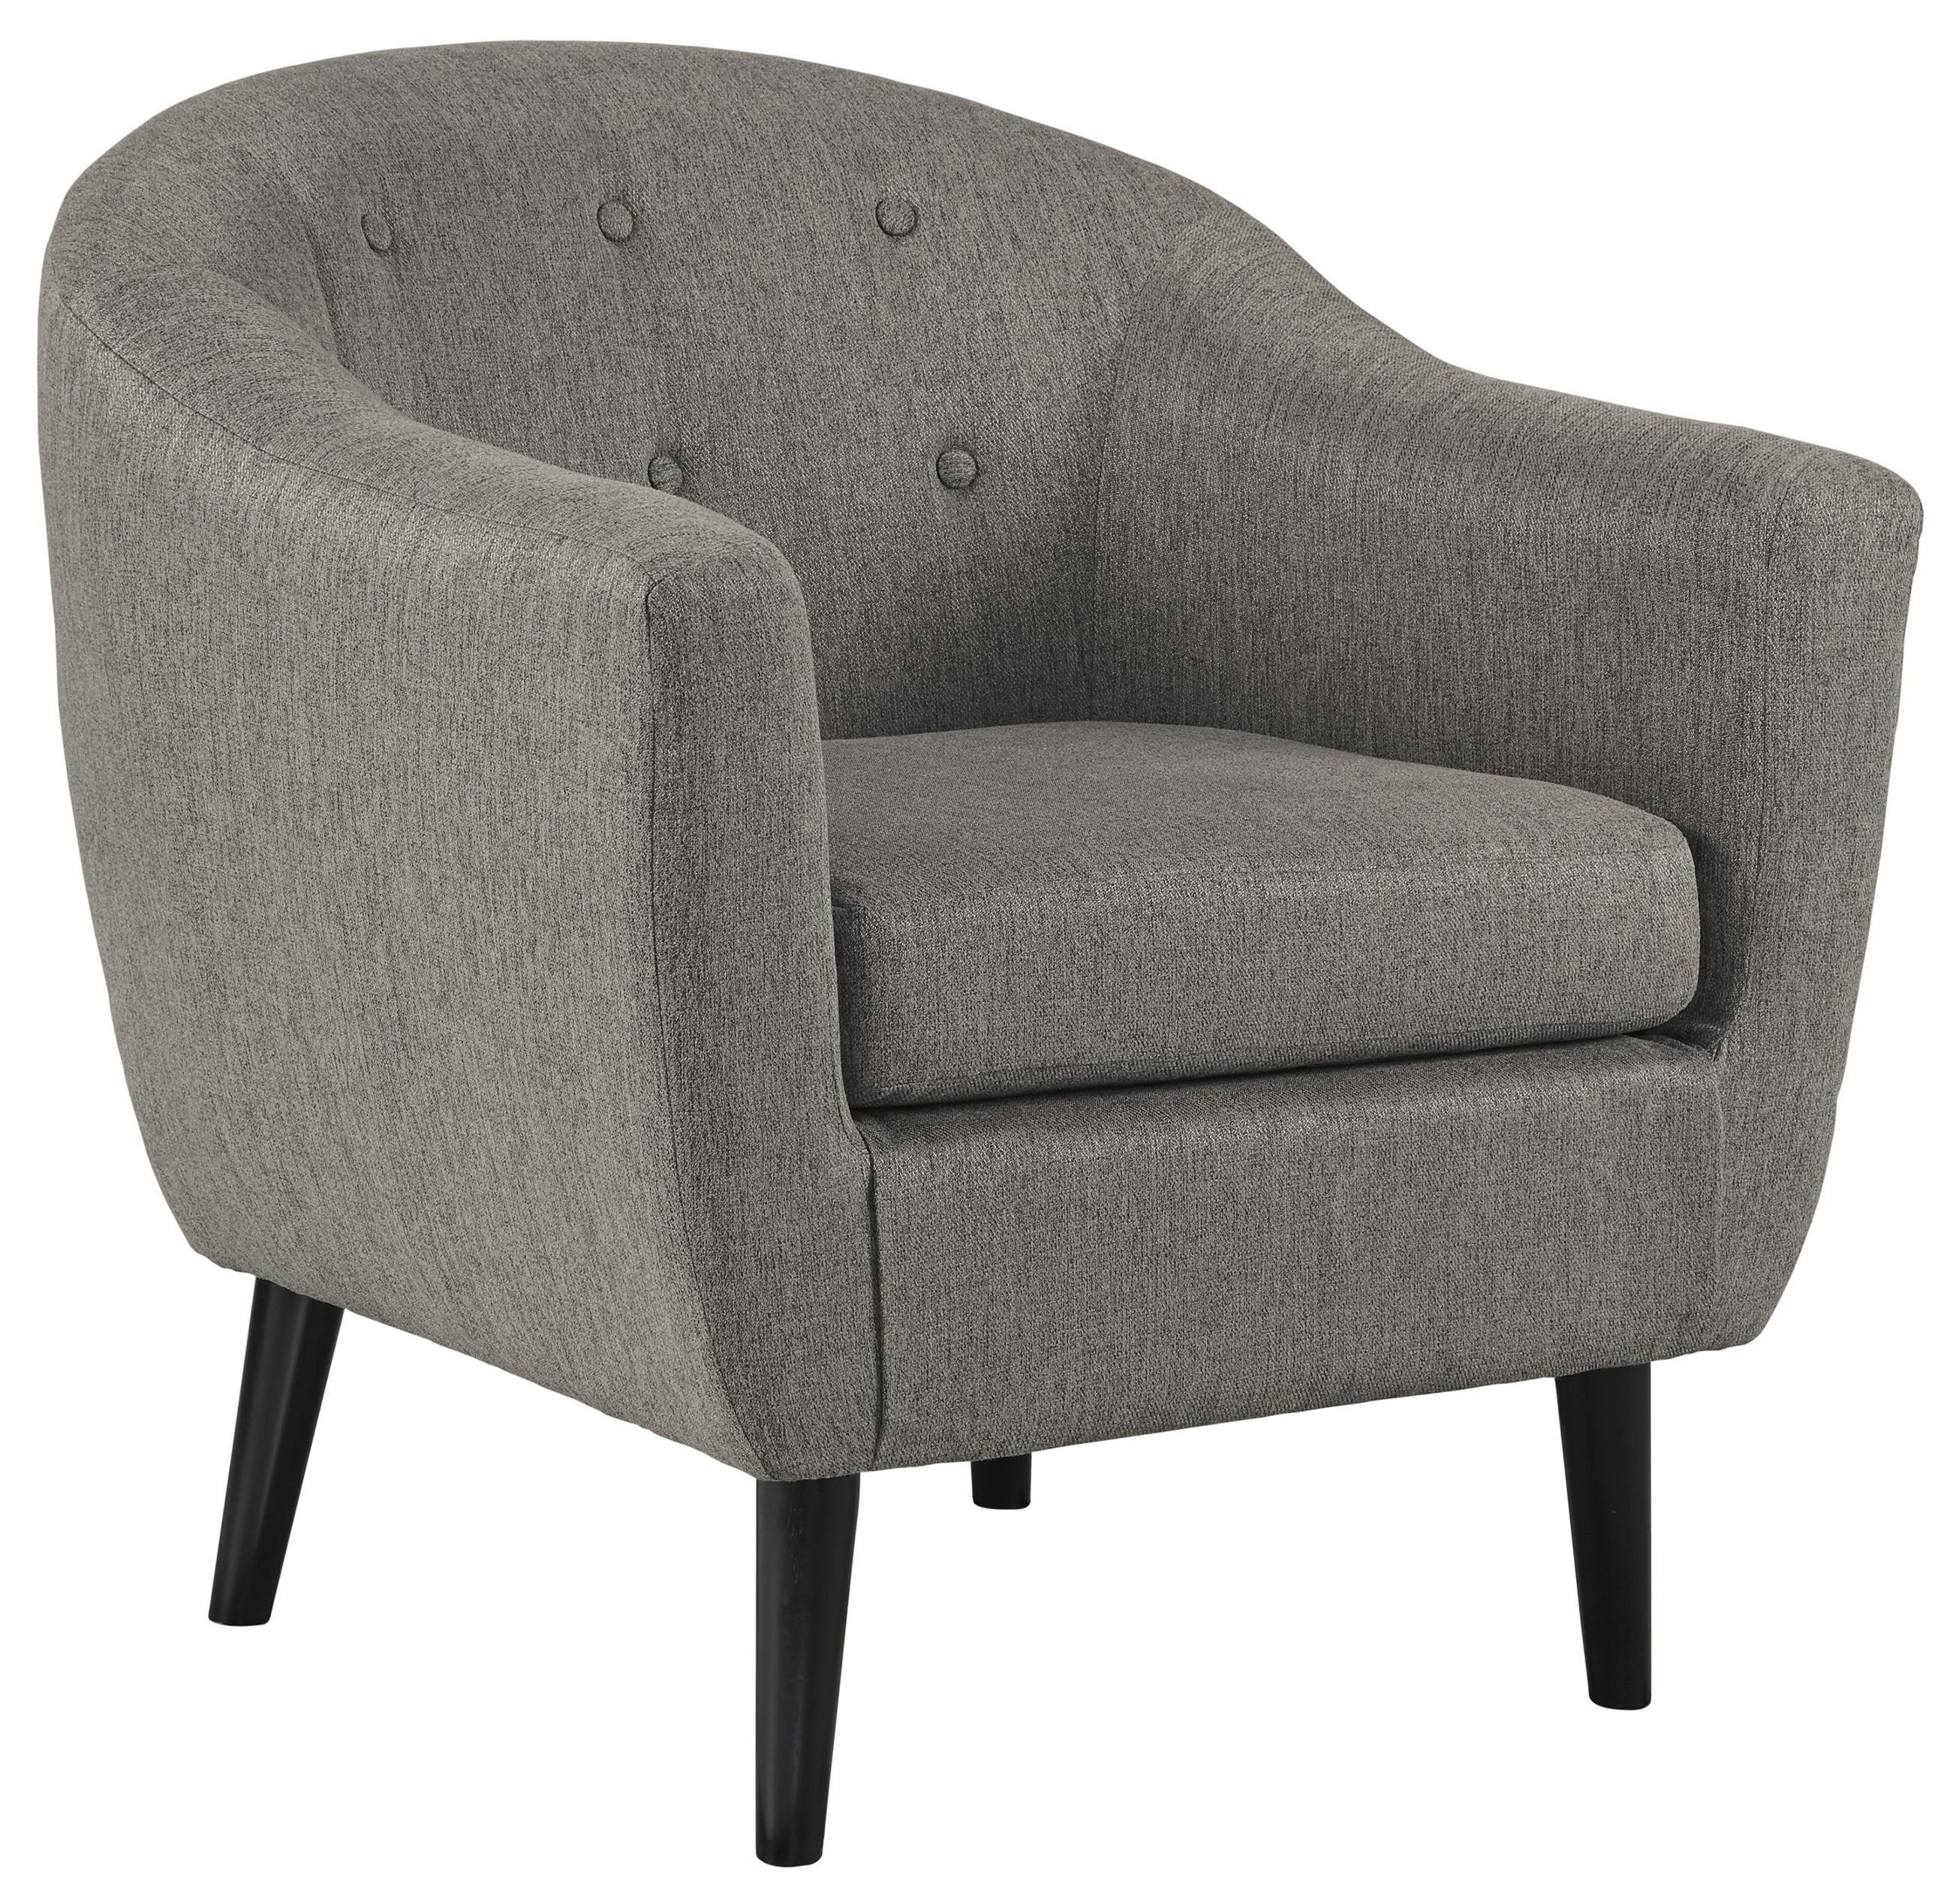 Klorey Accent Chair by Signature Design by Ashley at Red Knot